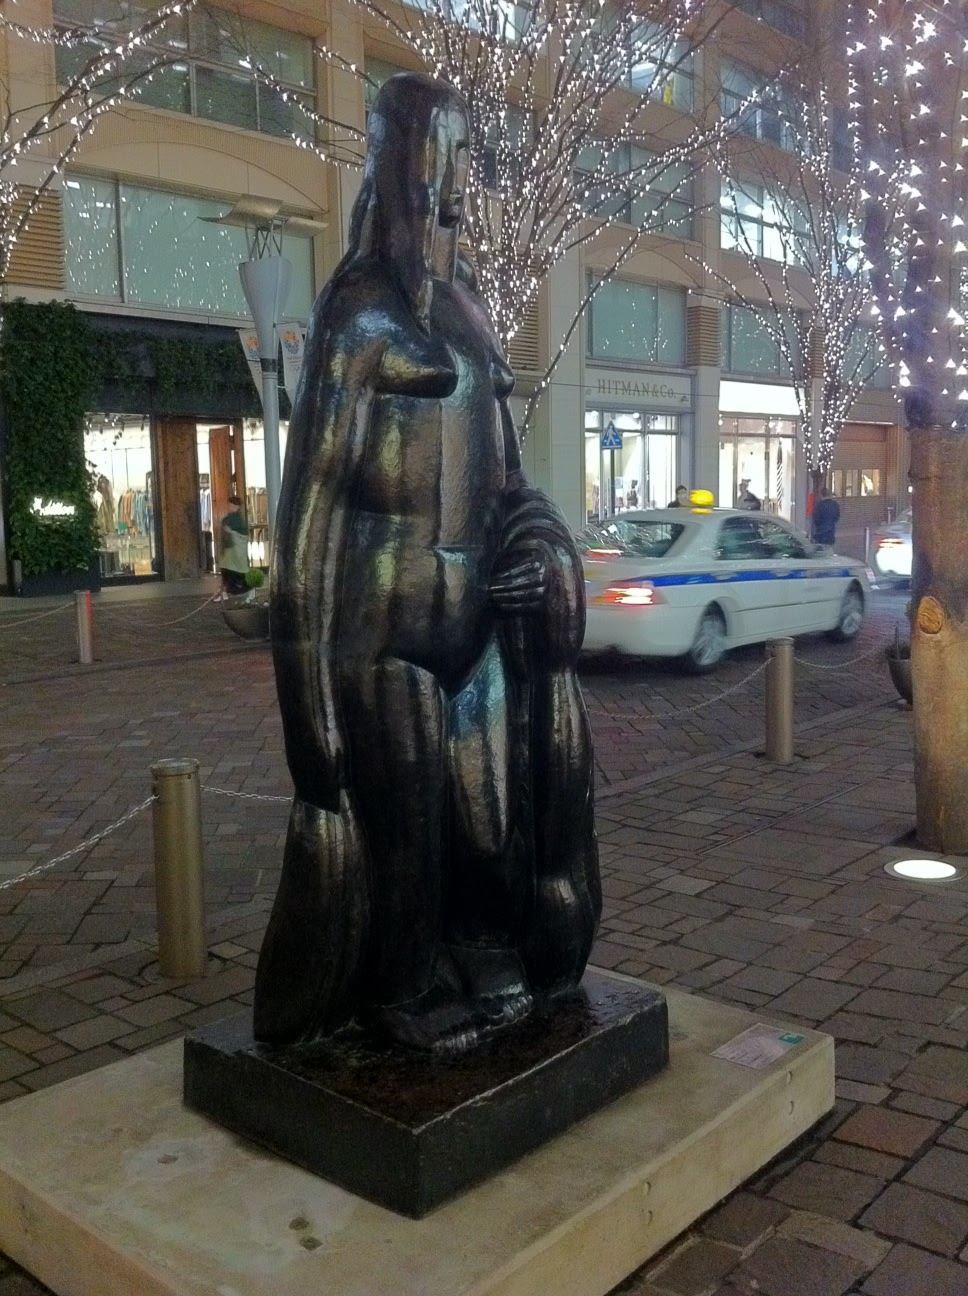 Henri Laurens sculpture, Femme Debout, in Marunouchi, Tokyo.